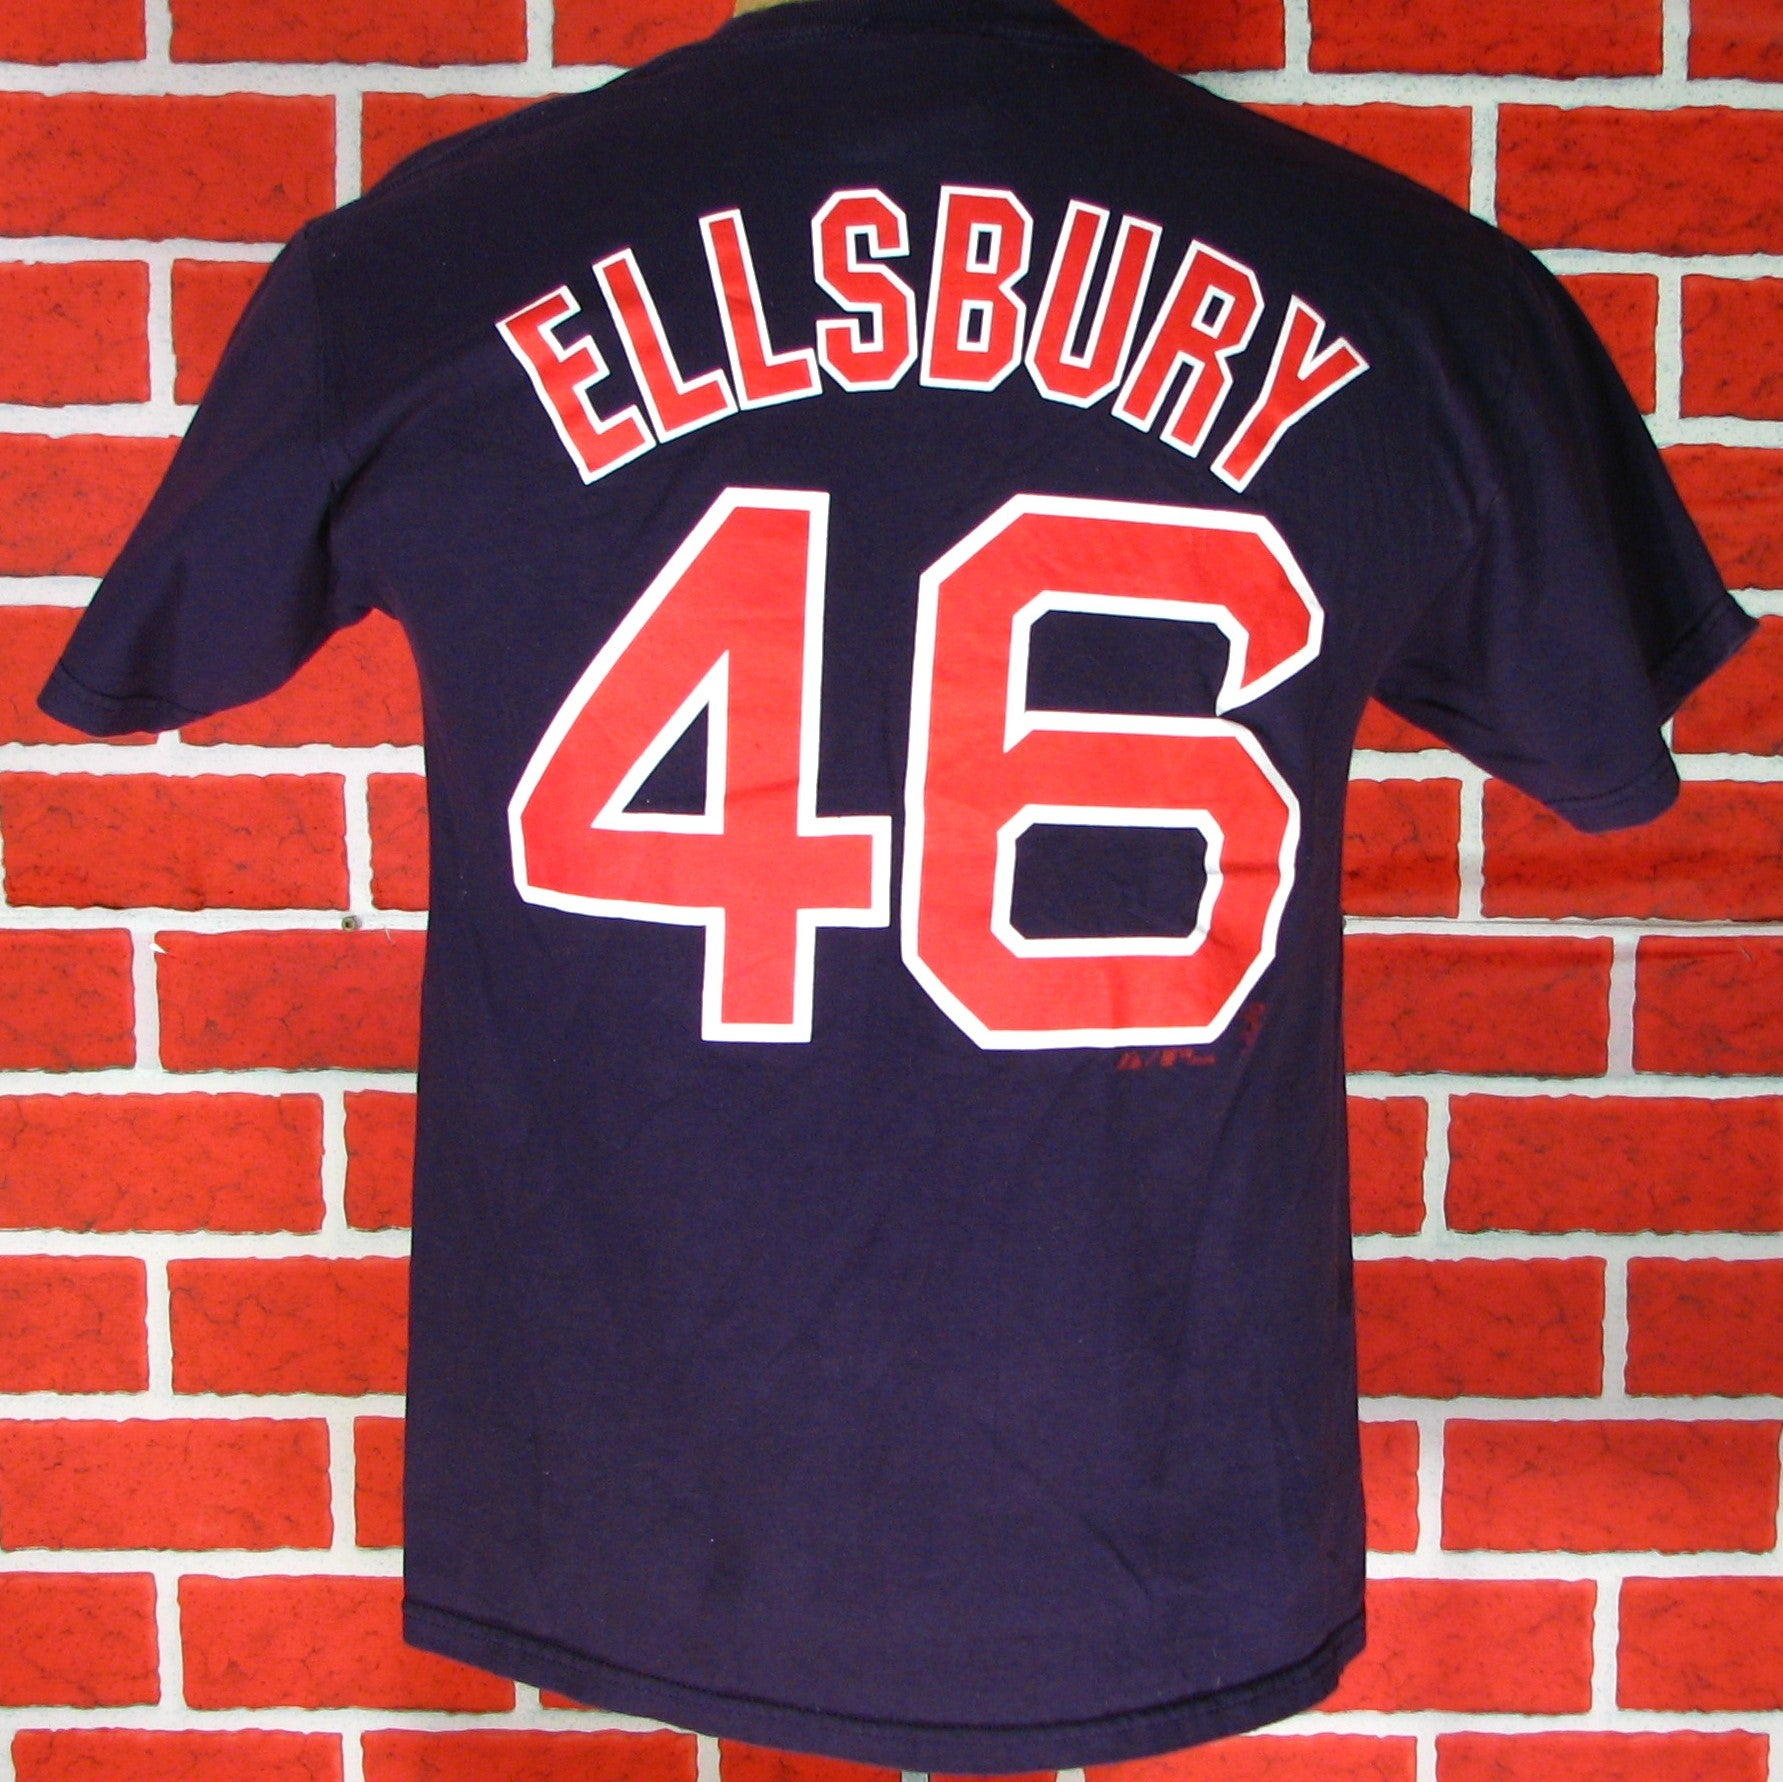 newest collection 07675 cf53d Boston Red Sox Ellsbury # 46 T-Shirt